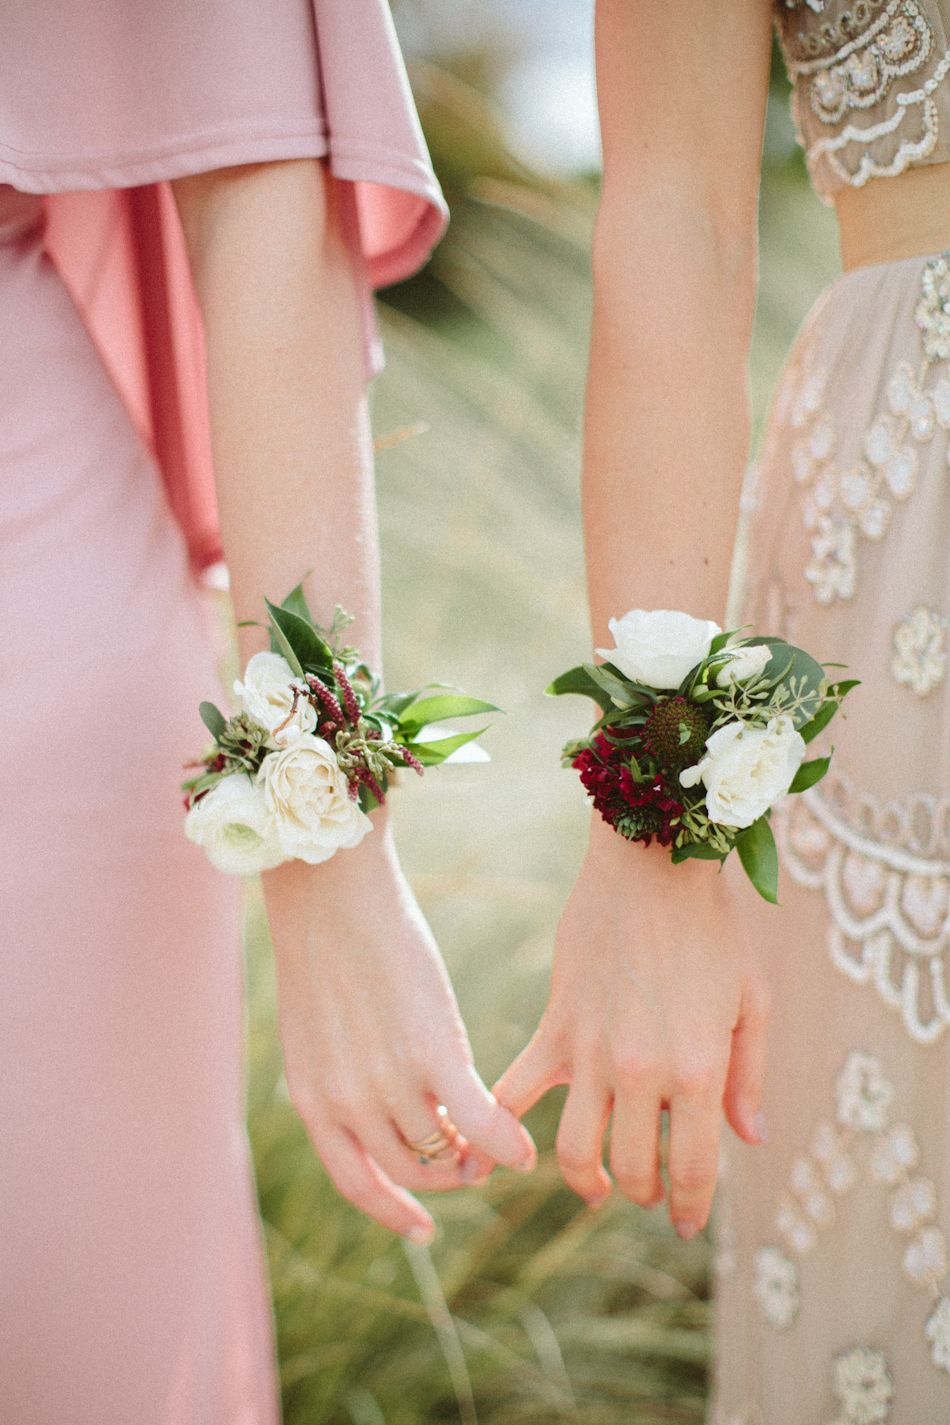 Bouquet Mariée Poignet 30 Ways To Break The Rules And Have The Coolest Wedding Ever